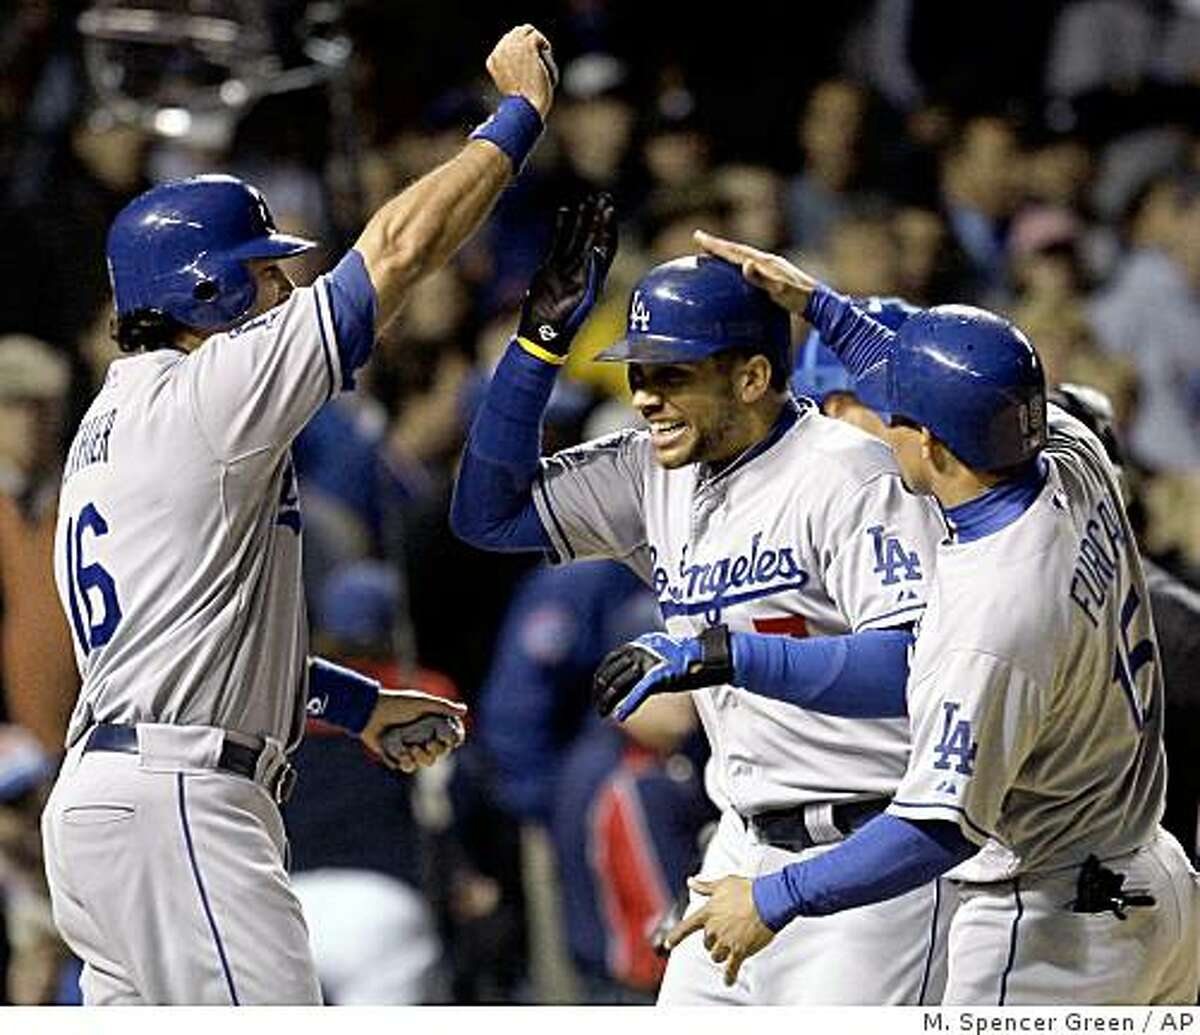 Los Angeles Dodgers' James Loney, center, is congratulated by teammates Andre Ethier (16) and Rafael Furcal, right, after hitting a grand slam during fifth-inning baseball action in Game 1 of the National League division series against the Chicago Cubs, Wednesday, Oct. 1, 2008, in Chicago. (AP Photo/M. Spencer Green)